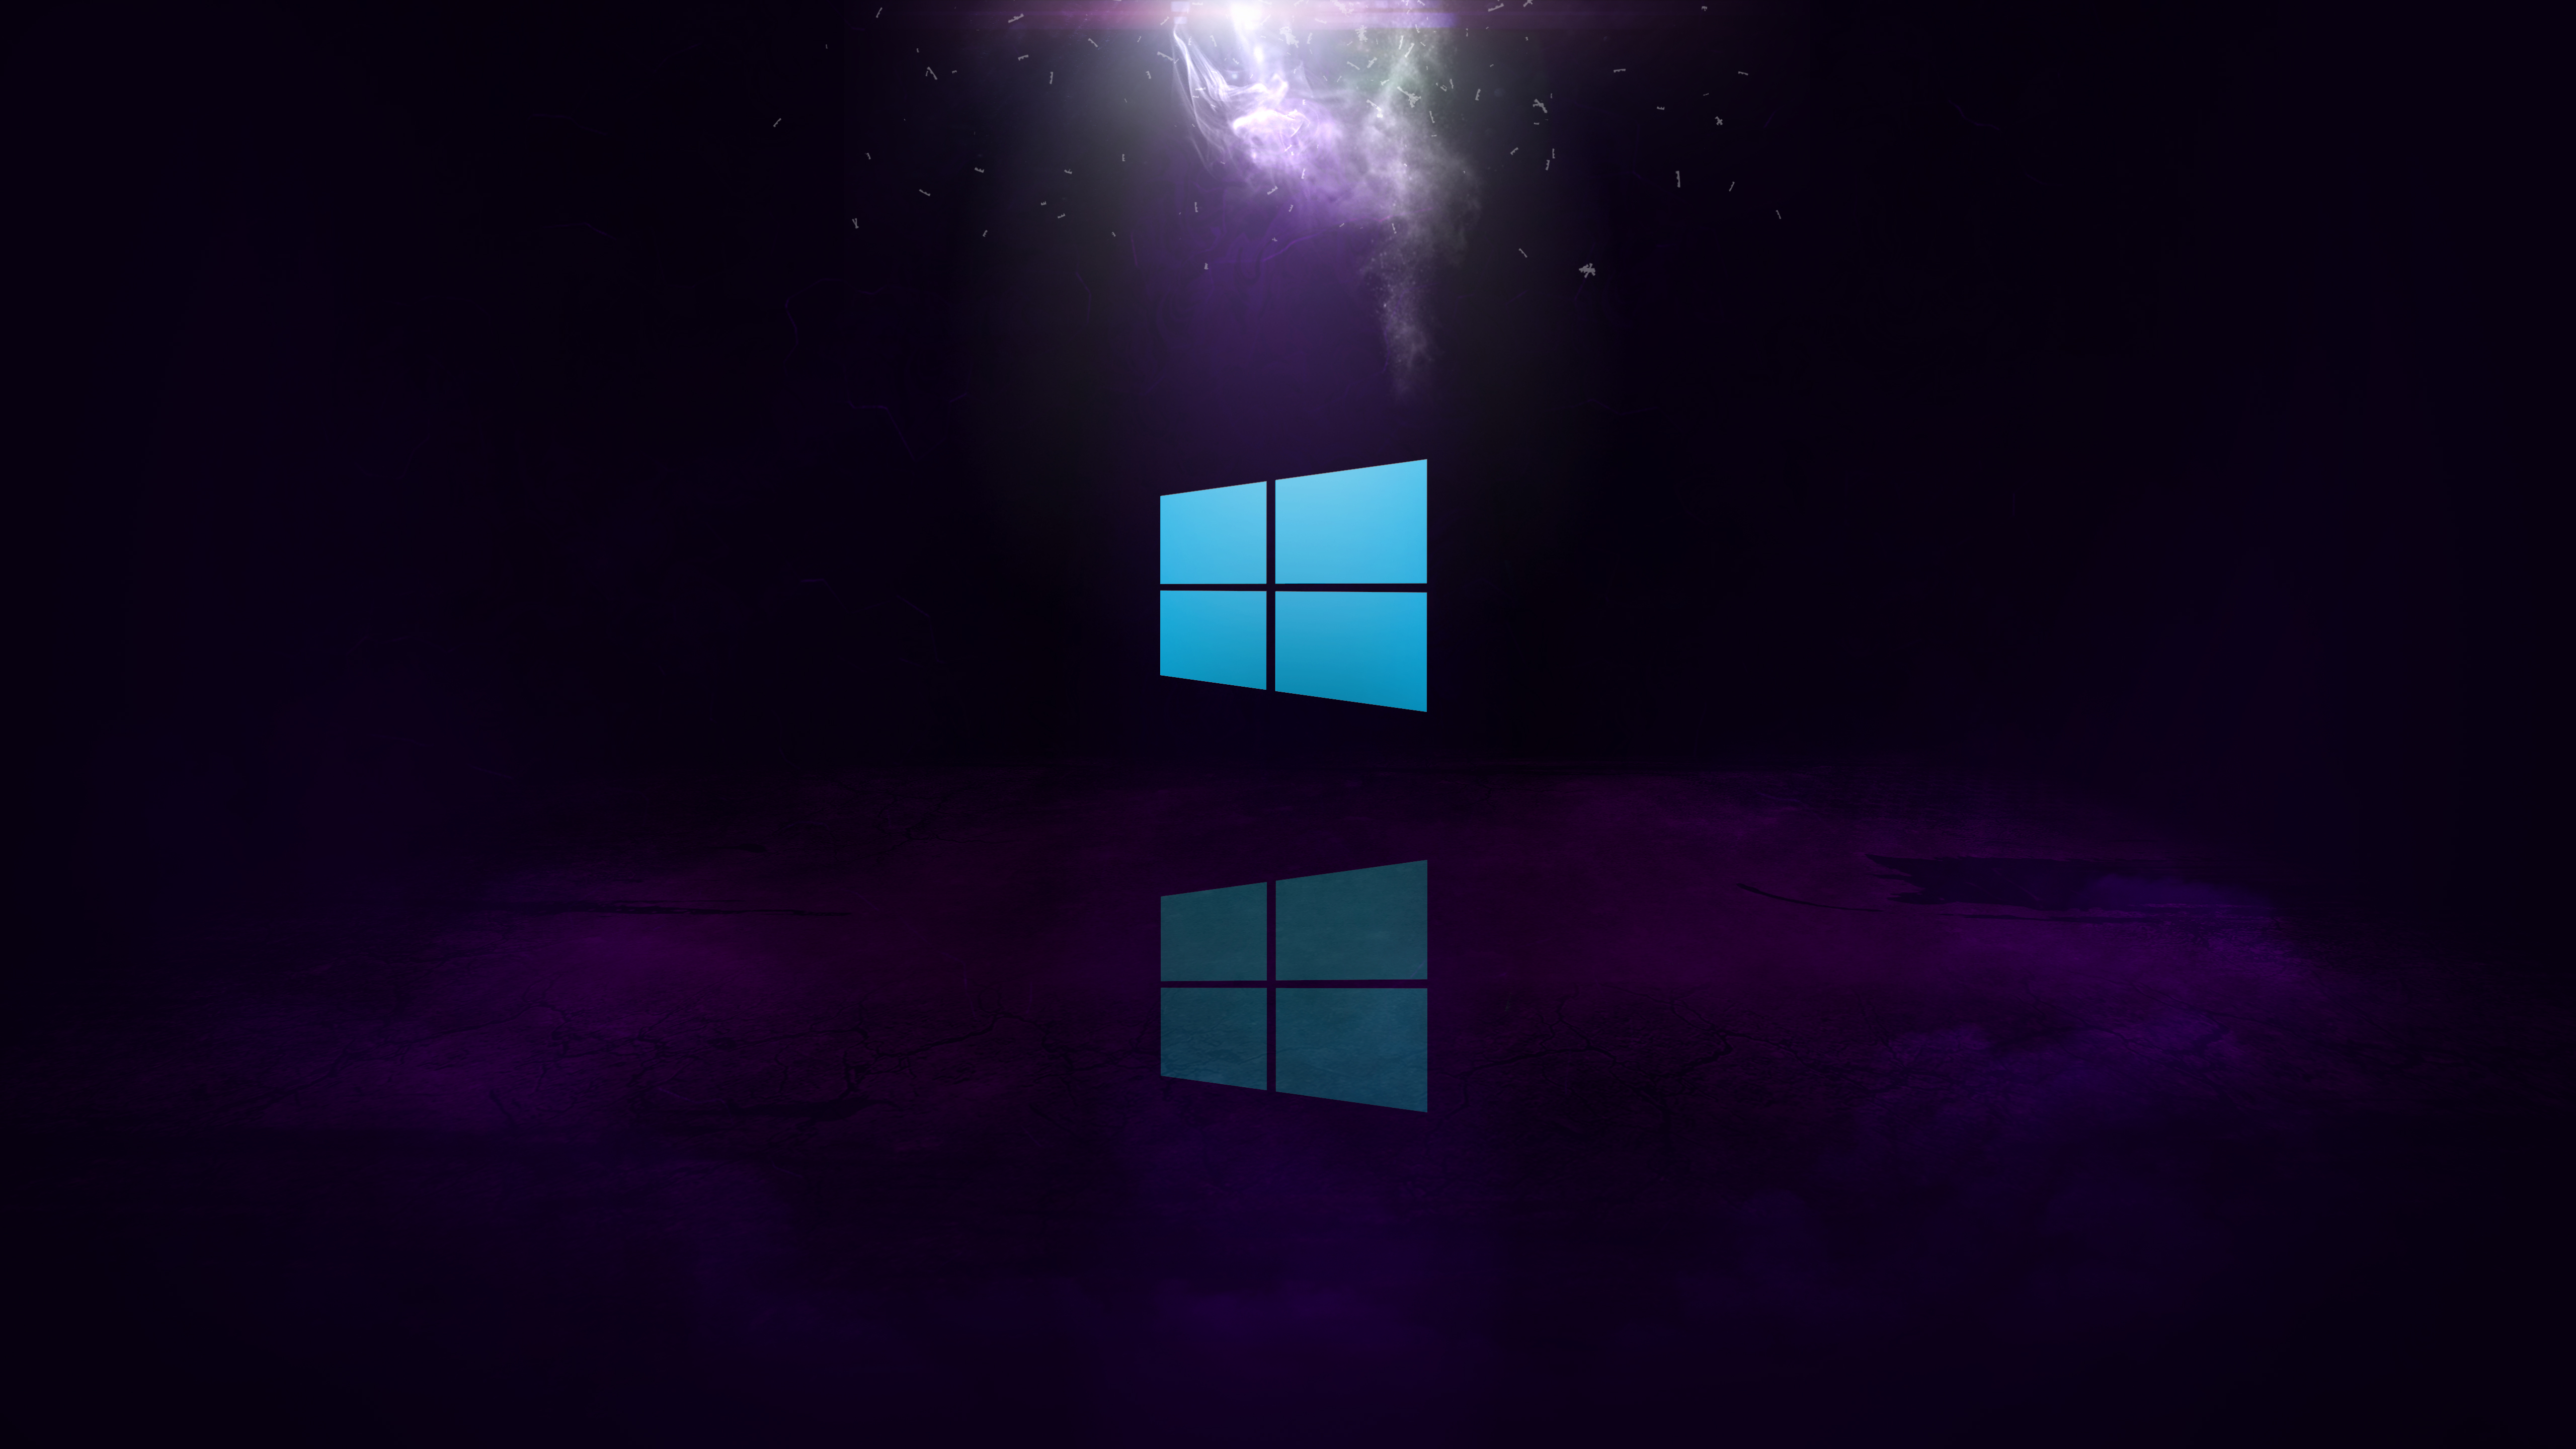 windows-10-5k-ir.jpg